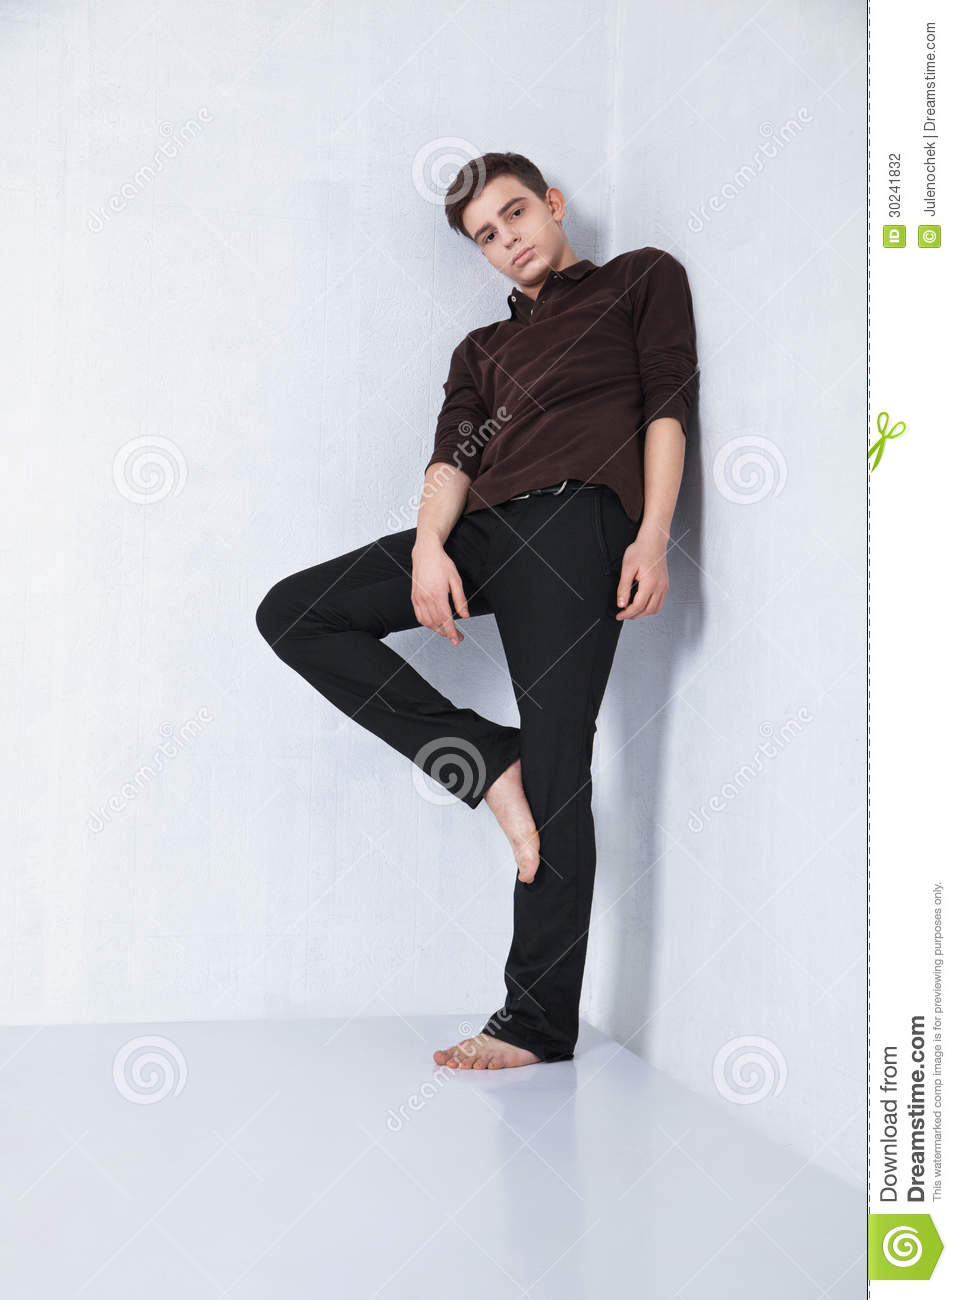 Young Male Fashion Model Posing In Casual Outfit Stock Photo - Image 30241832